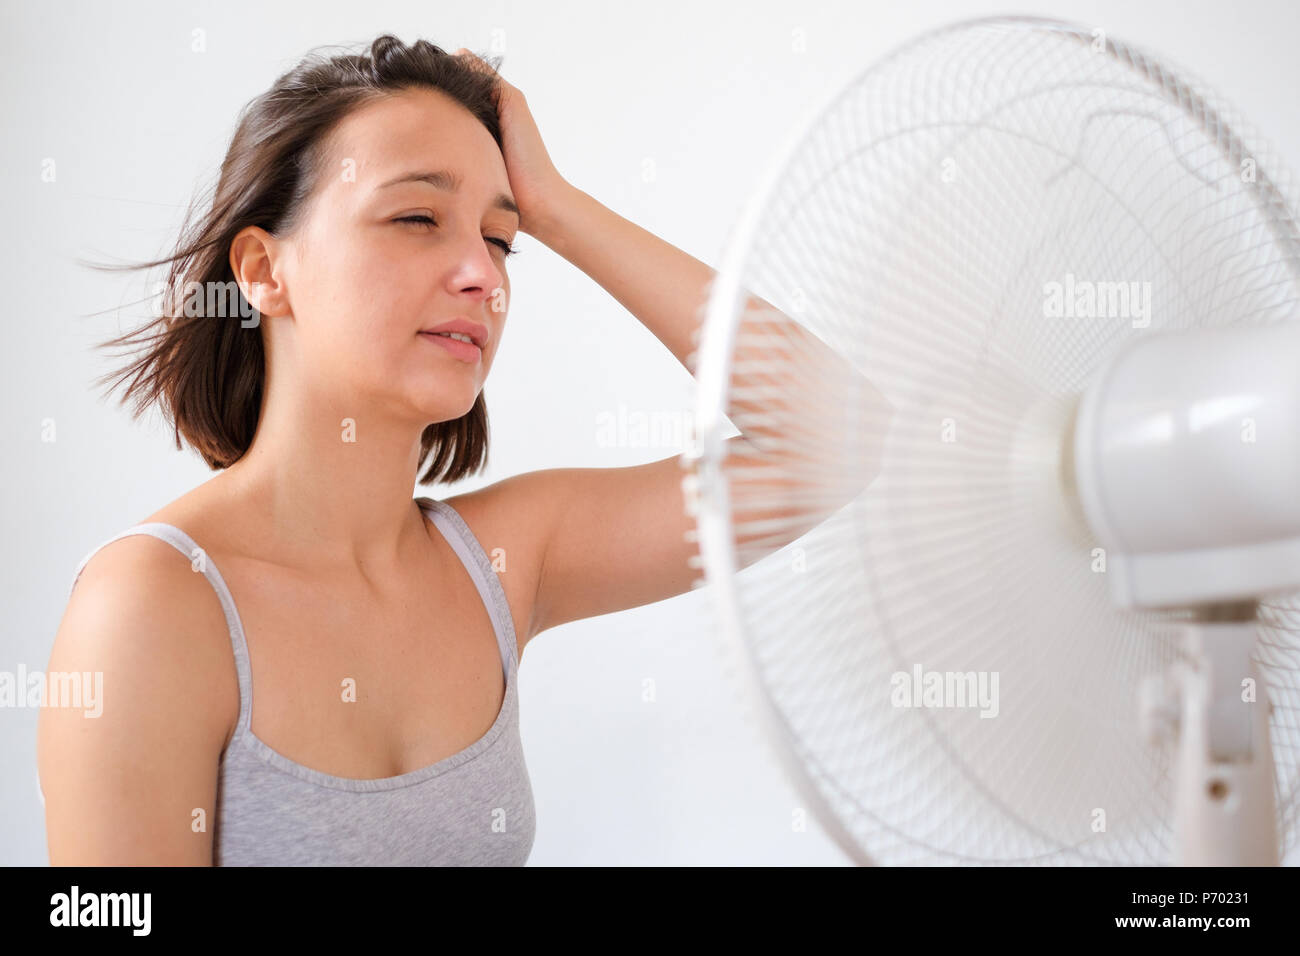 Woman refreshing in front of a electric fan ventilator - Stock Image